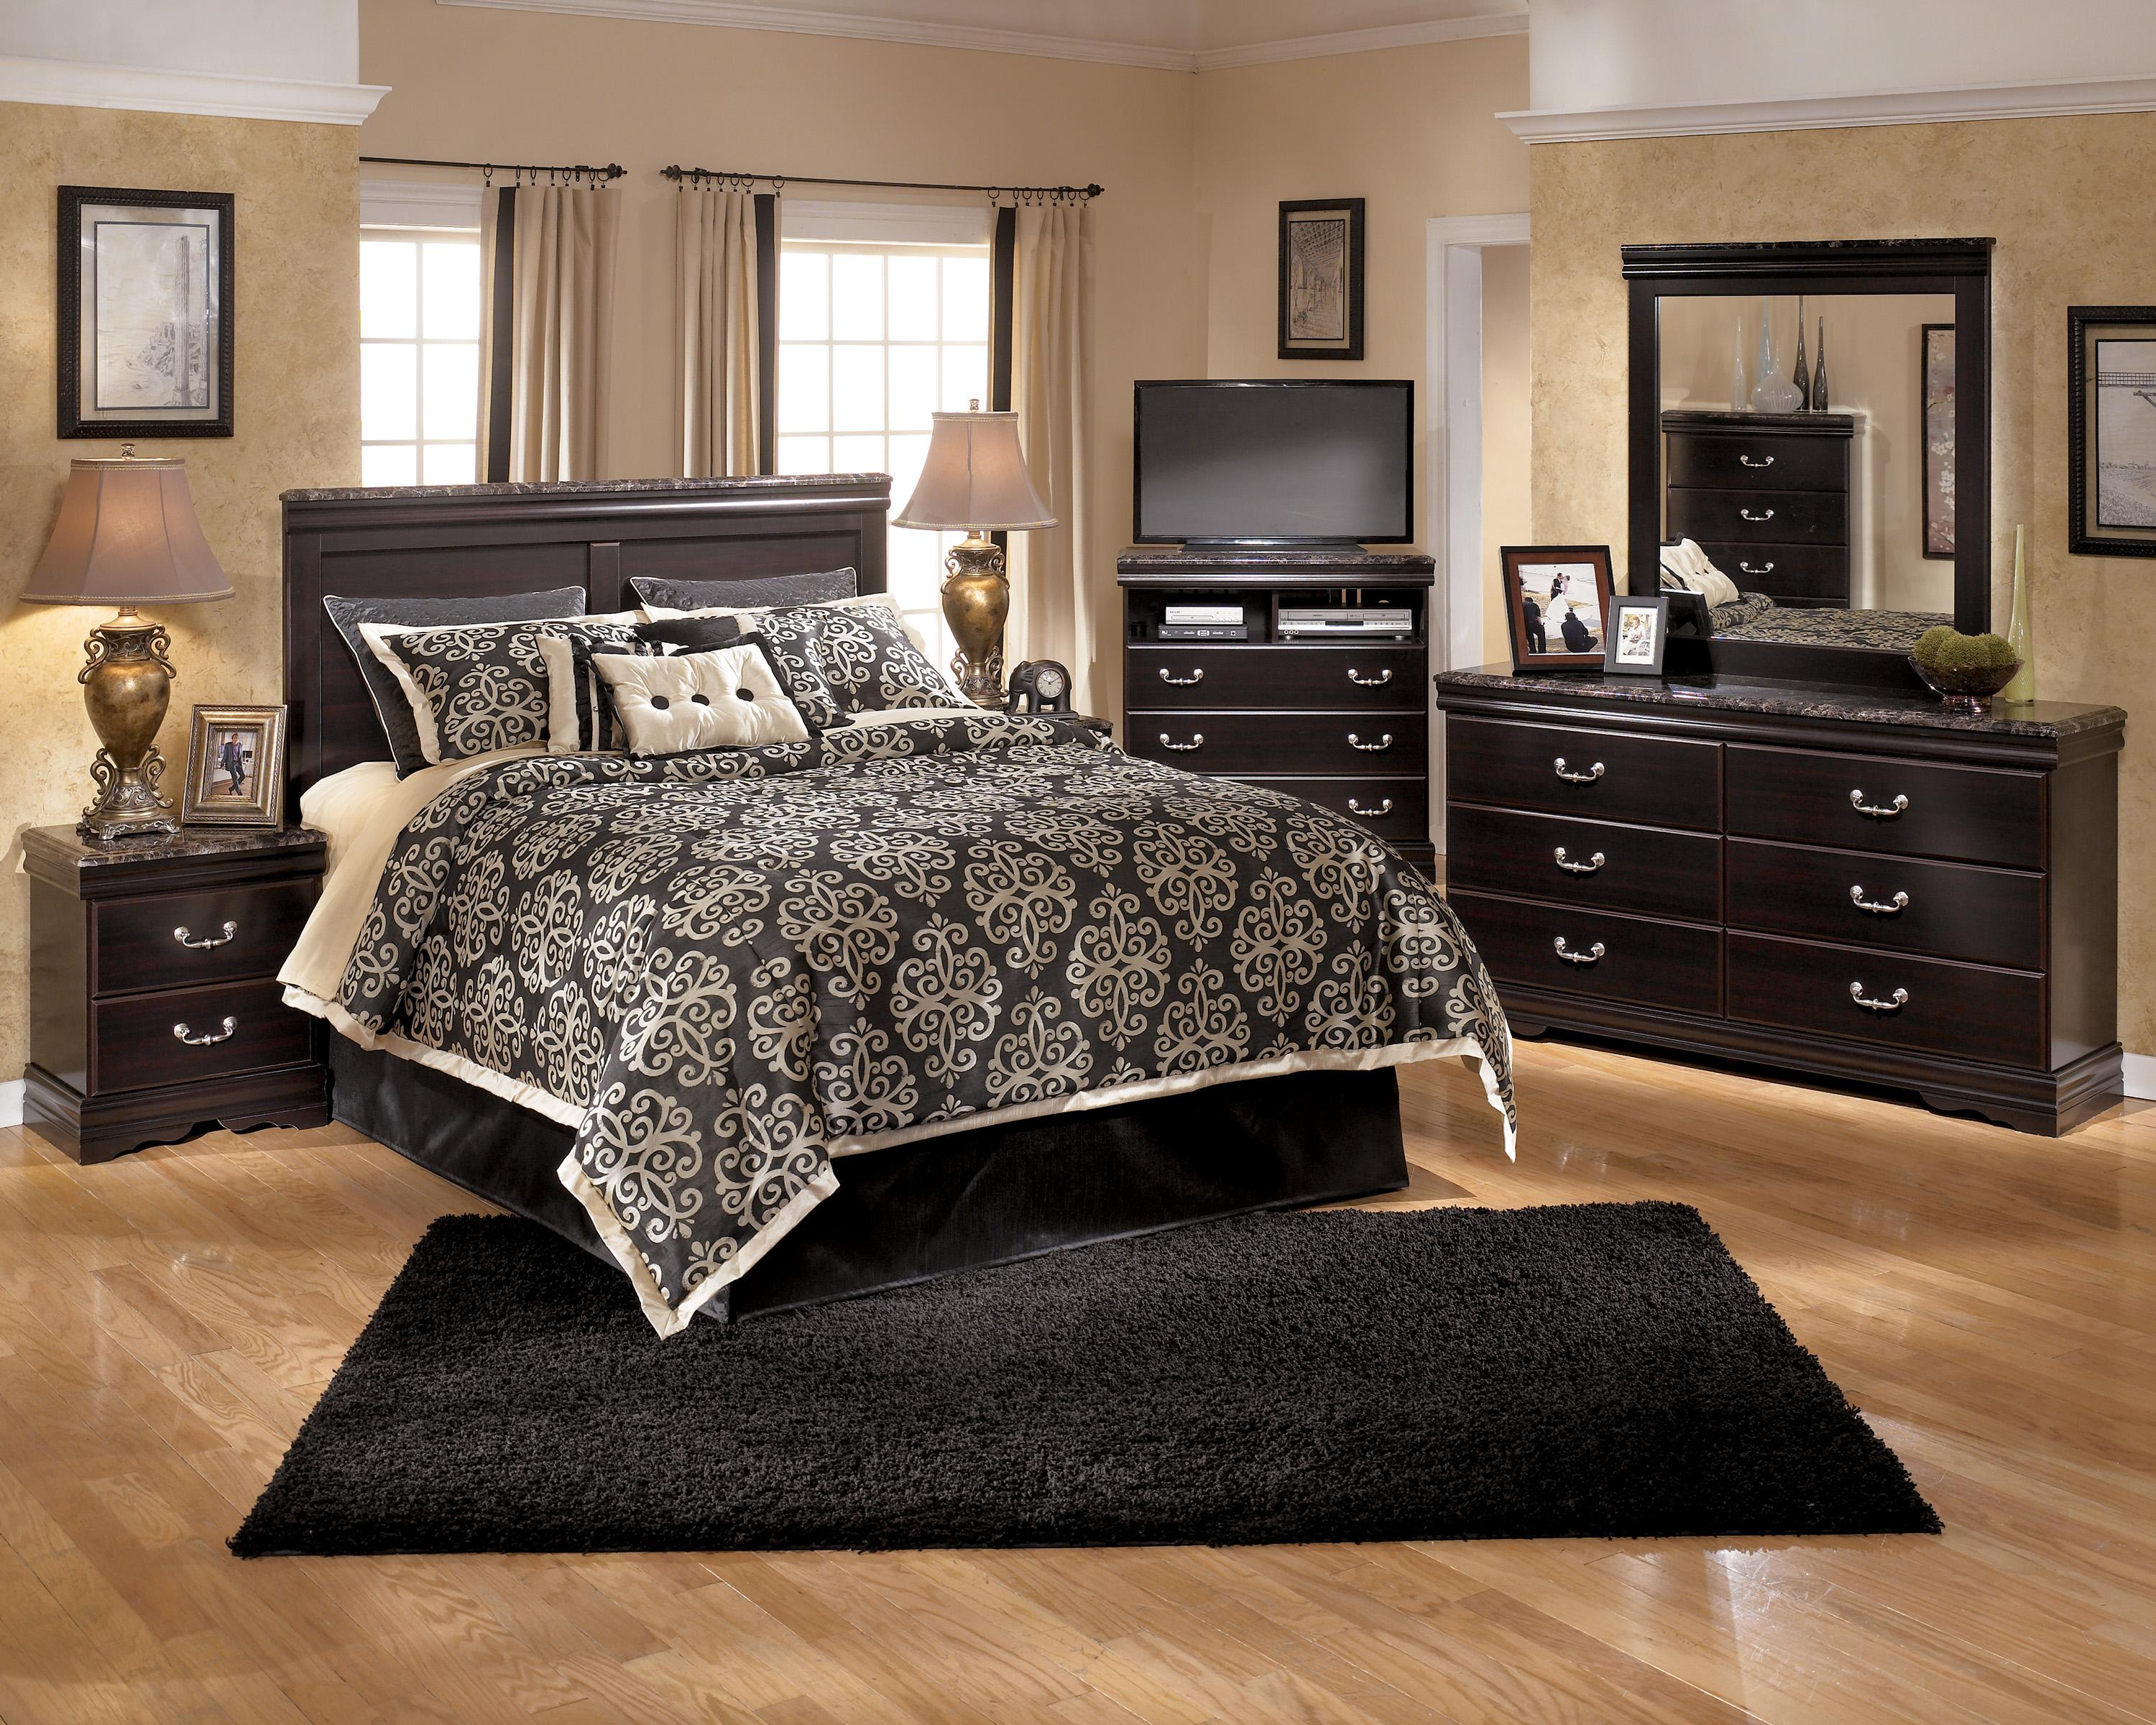 enlarge classy king the furniture click gabriela sd bed bedk ashley product bedroom to home poster